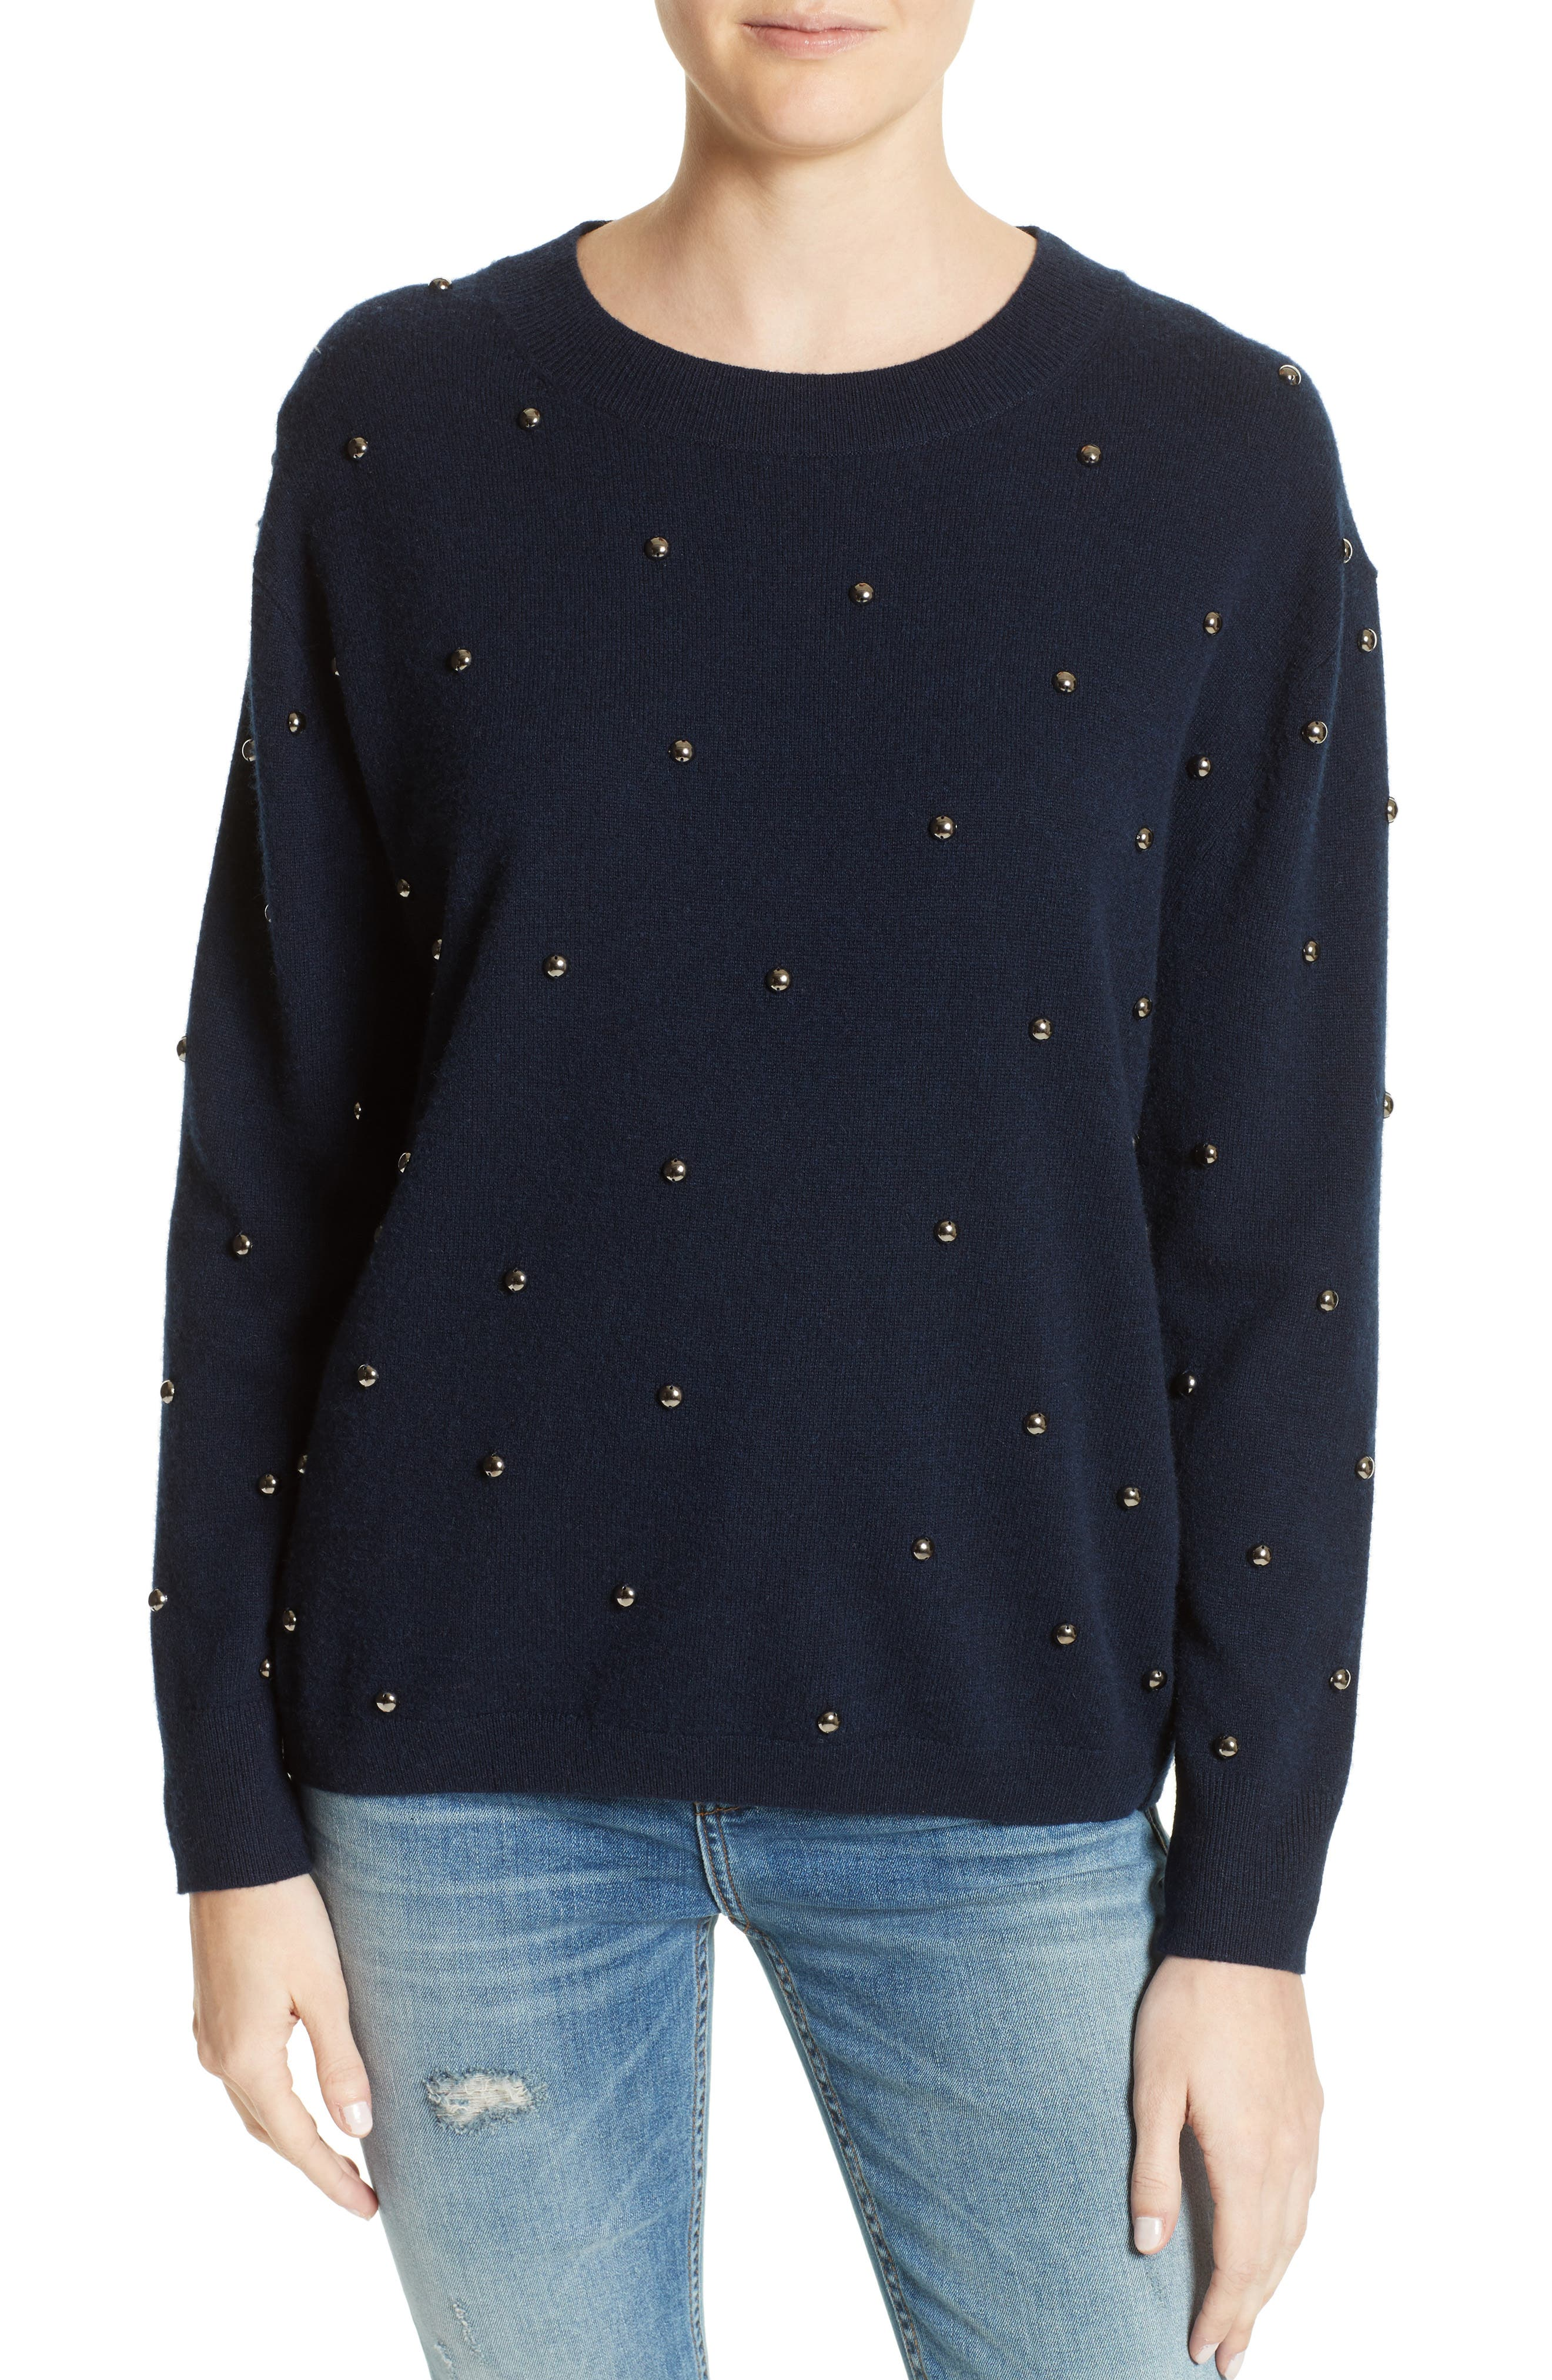 The Kooples Embellished Wool & Cashmere Sweater